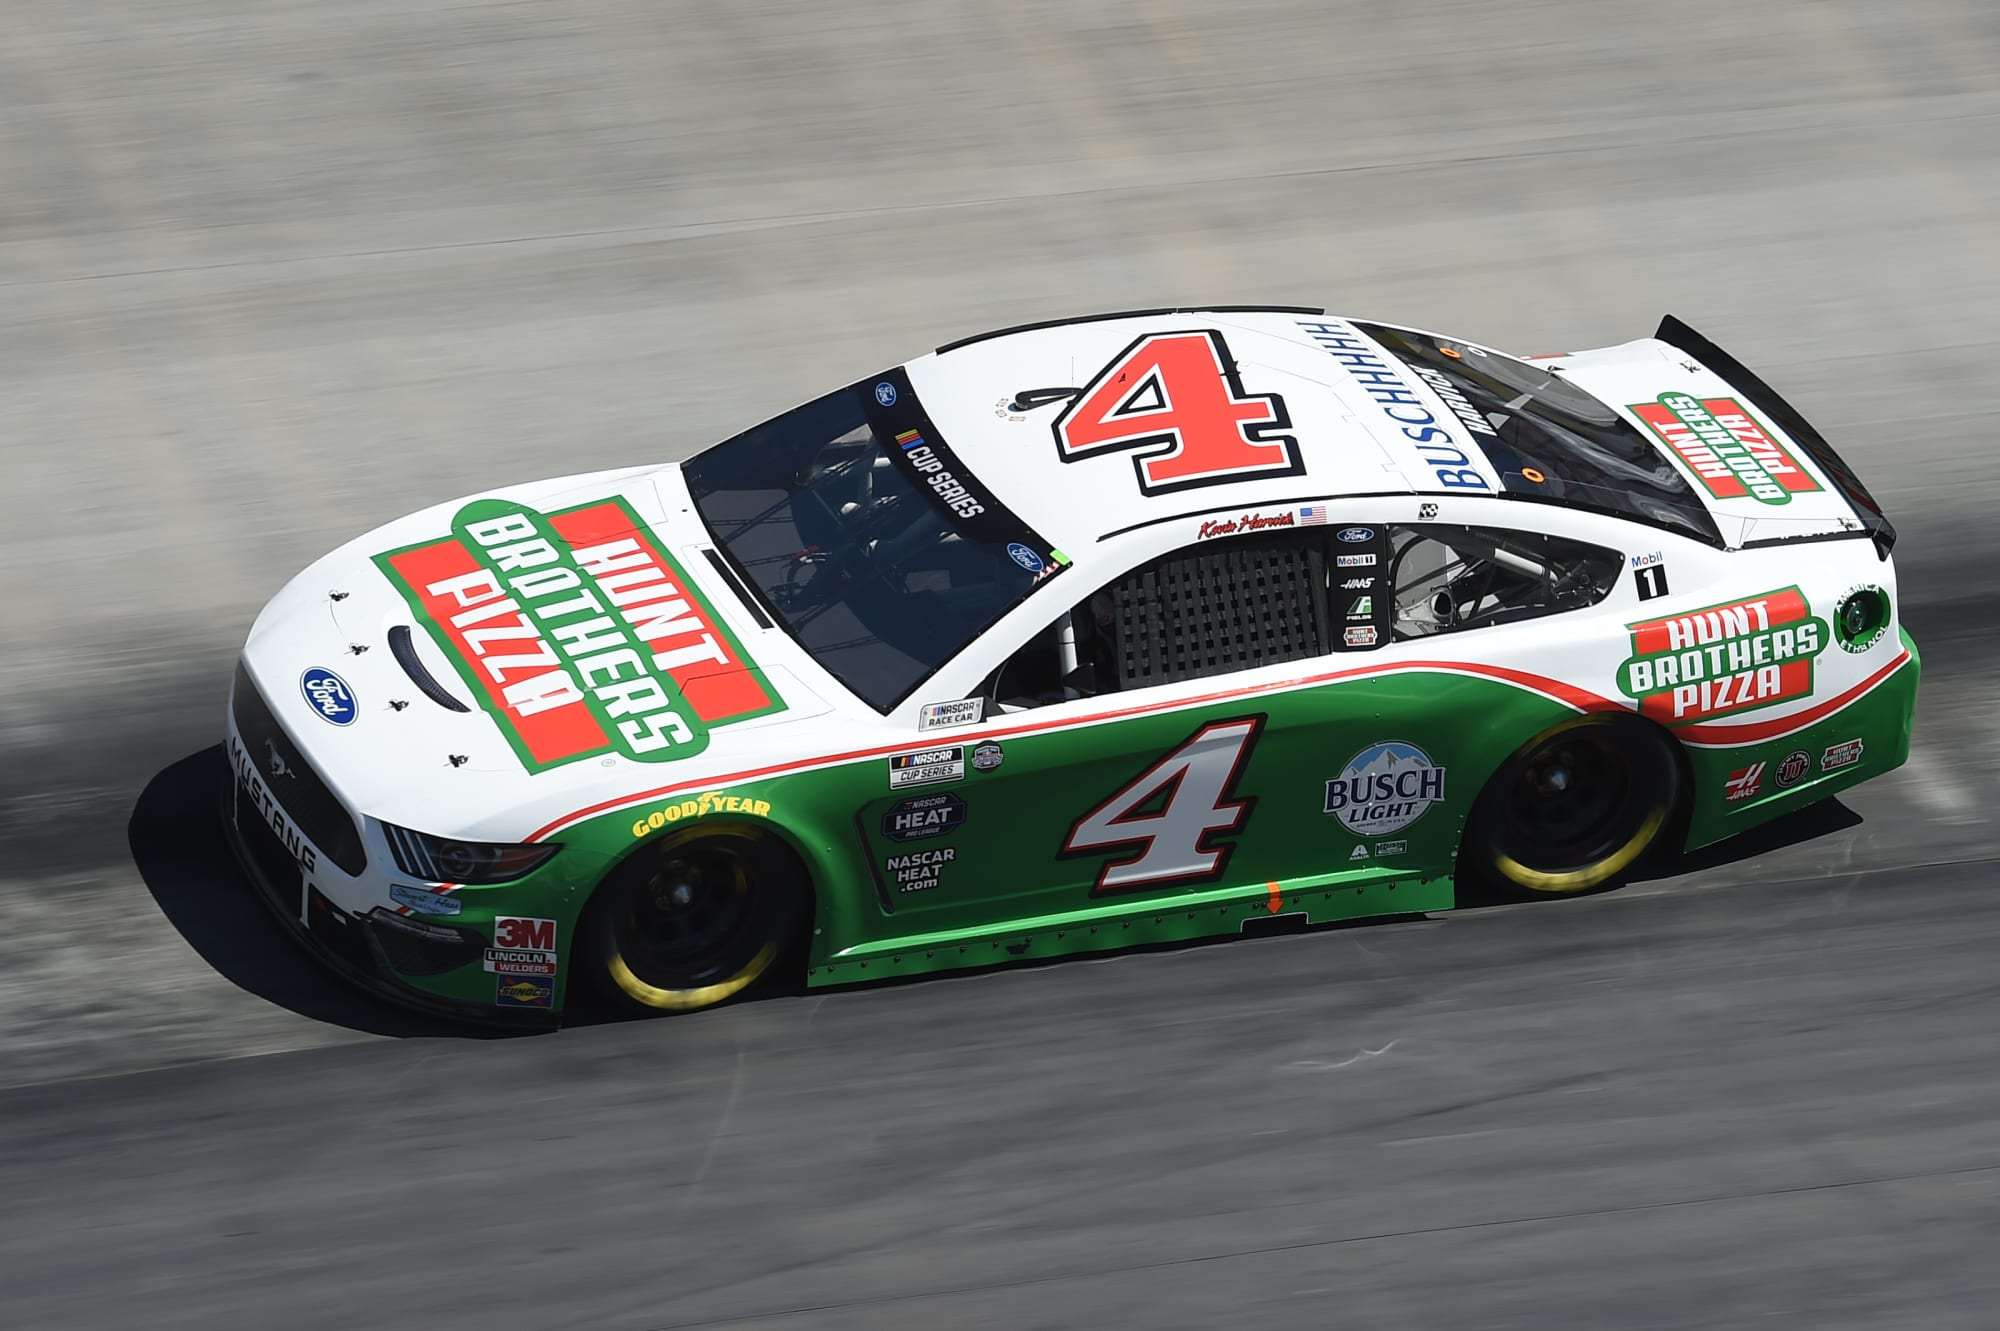 NASCAR: Kevin Harvick's incredible streak comes to an end at Bristol